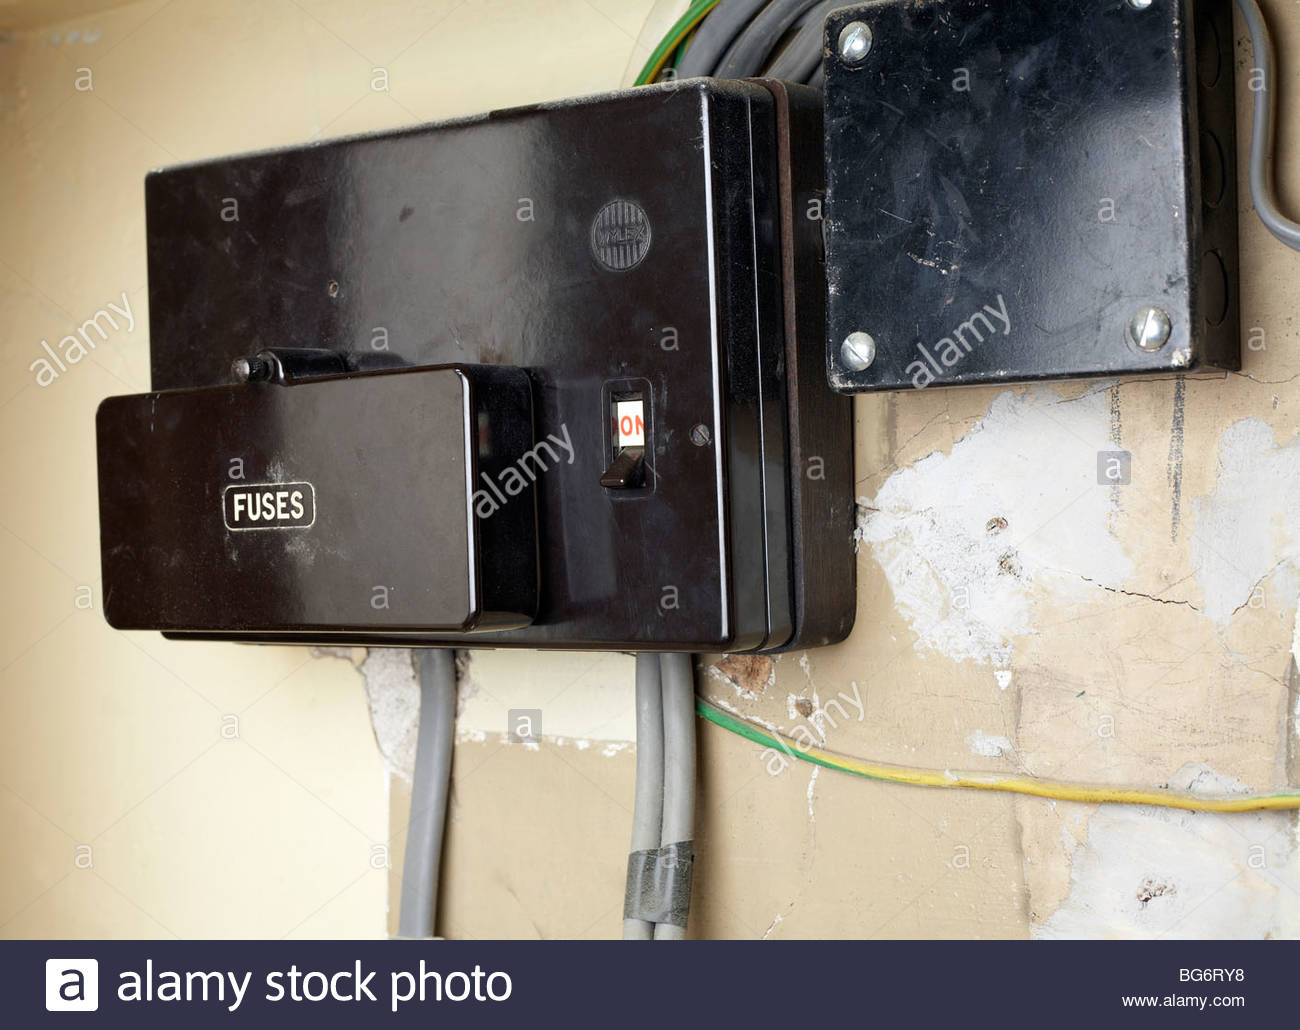 fuse box household stock photos fuse box household stock images rh alamy com house fuse box wiring diagram house fuse box problems